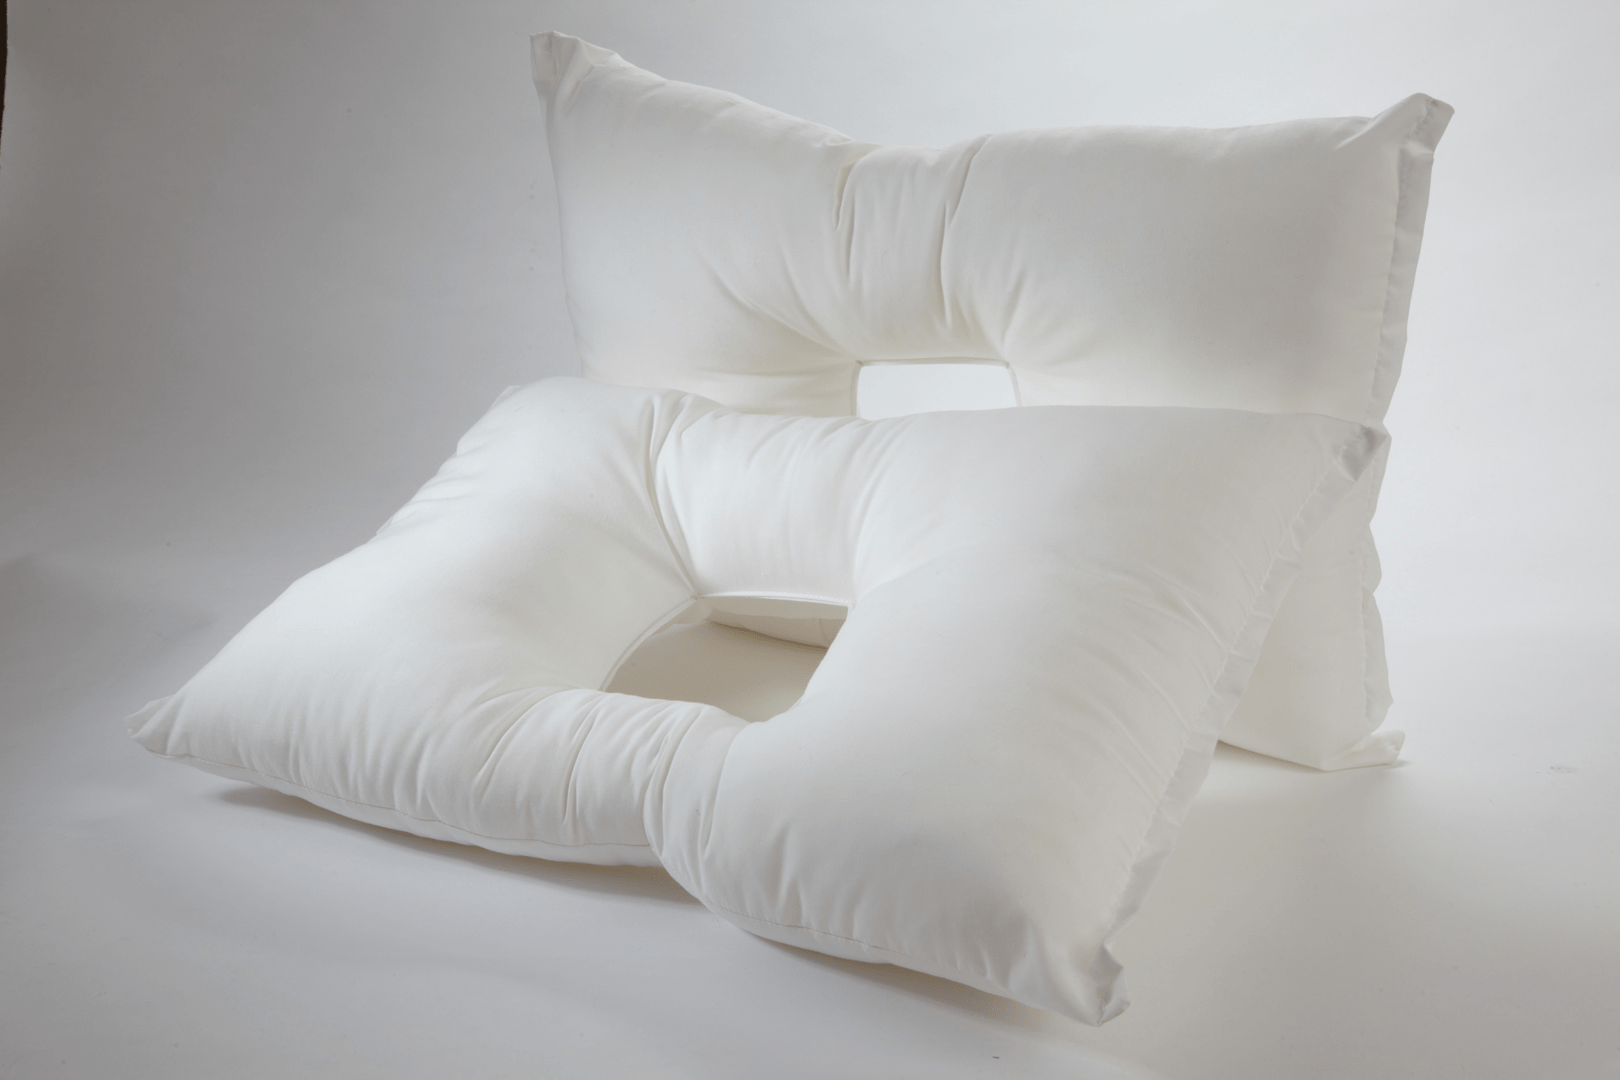 Best Pillow For Ear Pain Best Pillow For Ear Pain The